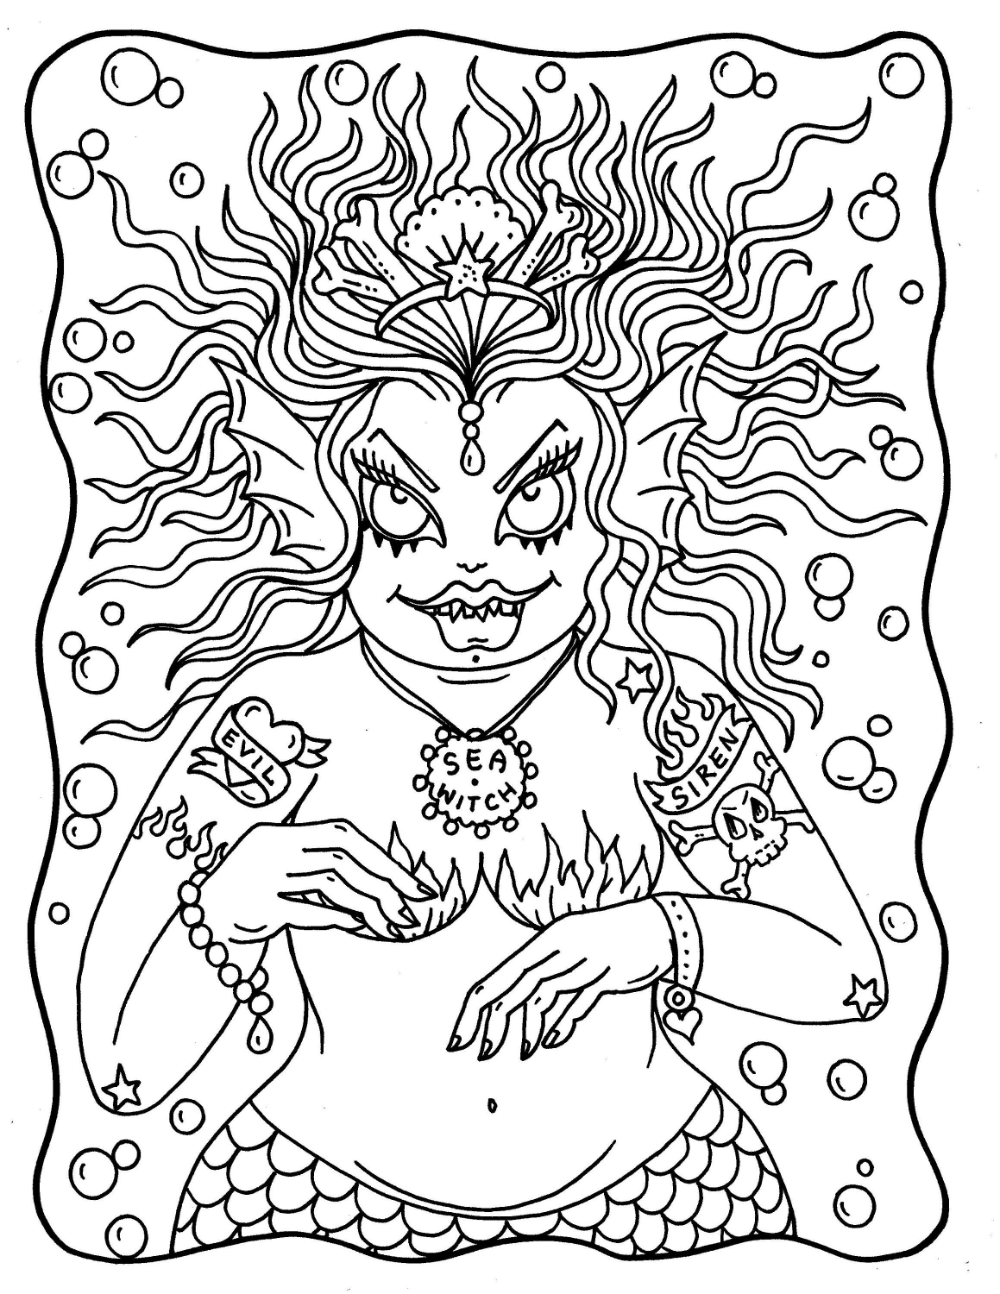 Mermaid Nightmares Pdf Downloadable Printable Digital Coloring Book Mermads Sirens Halloween Scary Kleurboek Kleurplaten Voor Volwassenen Etsy